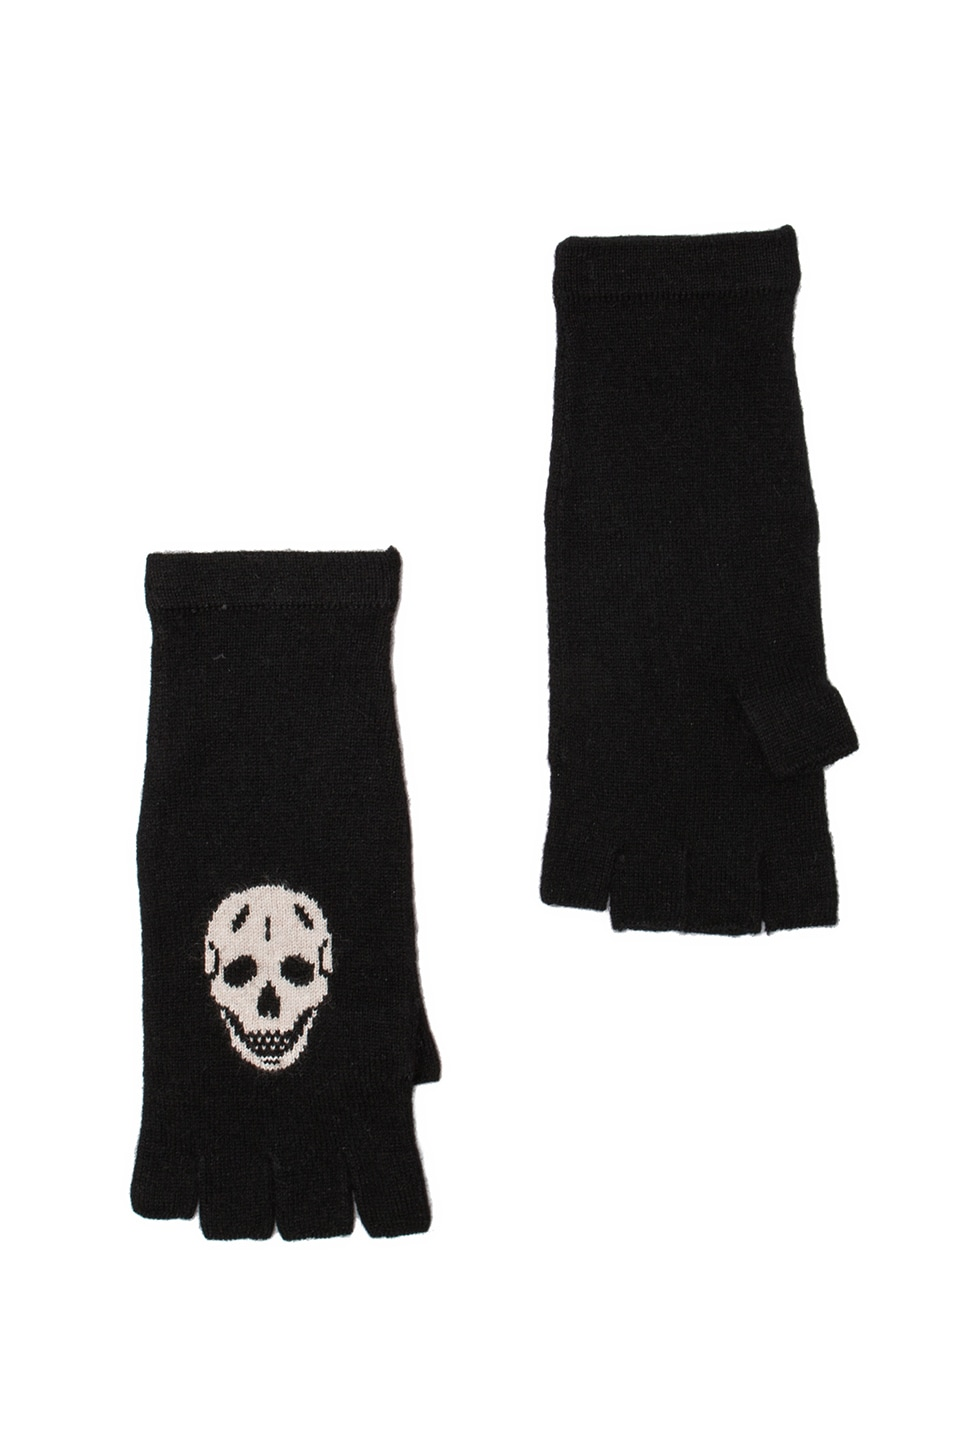 360 Sweater Skull Cashmere REVOLVE Exclusive Skull Glove in Black & Bone